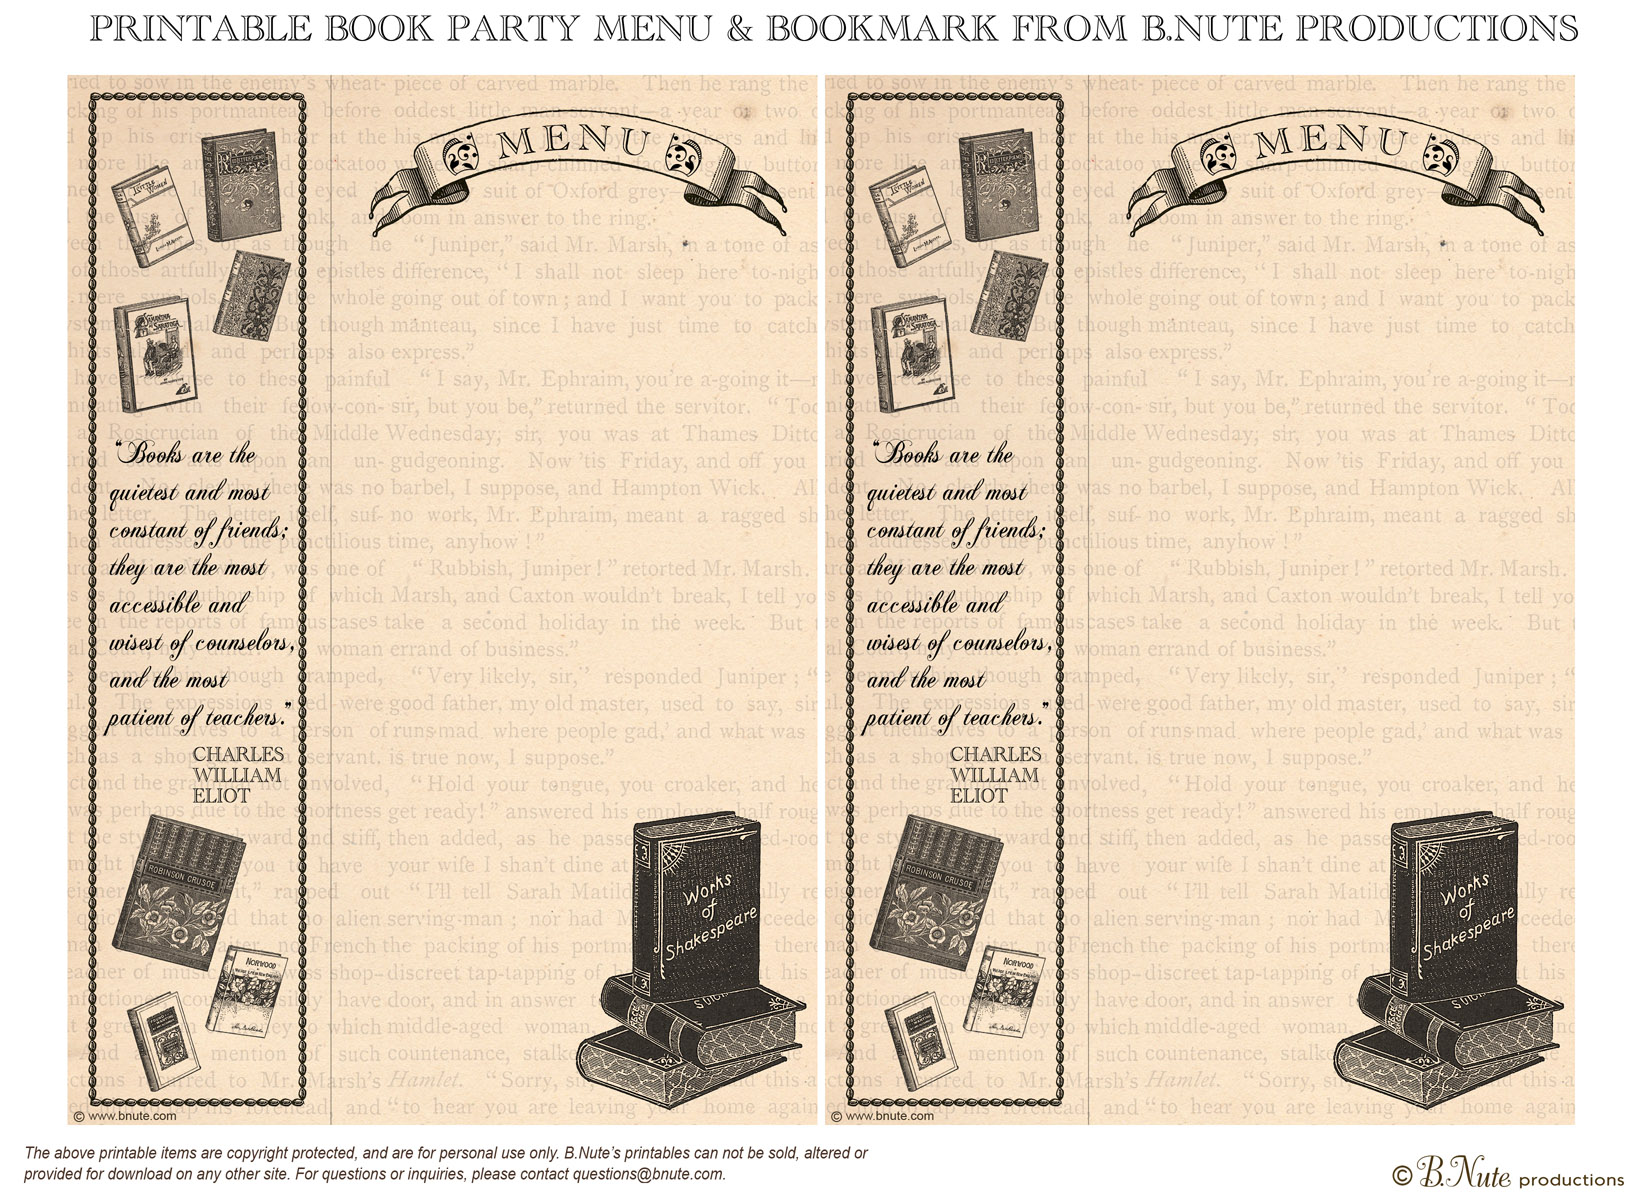 Bnute Productions Free Printable Book Party Menu And Bookmark